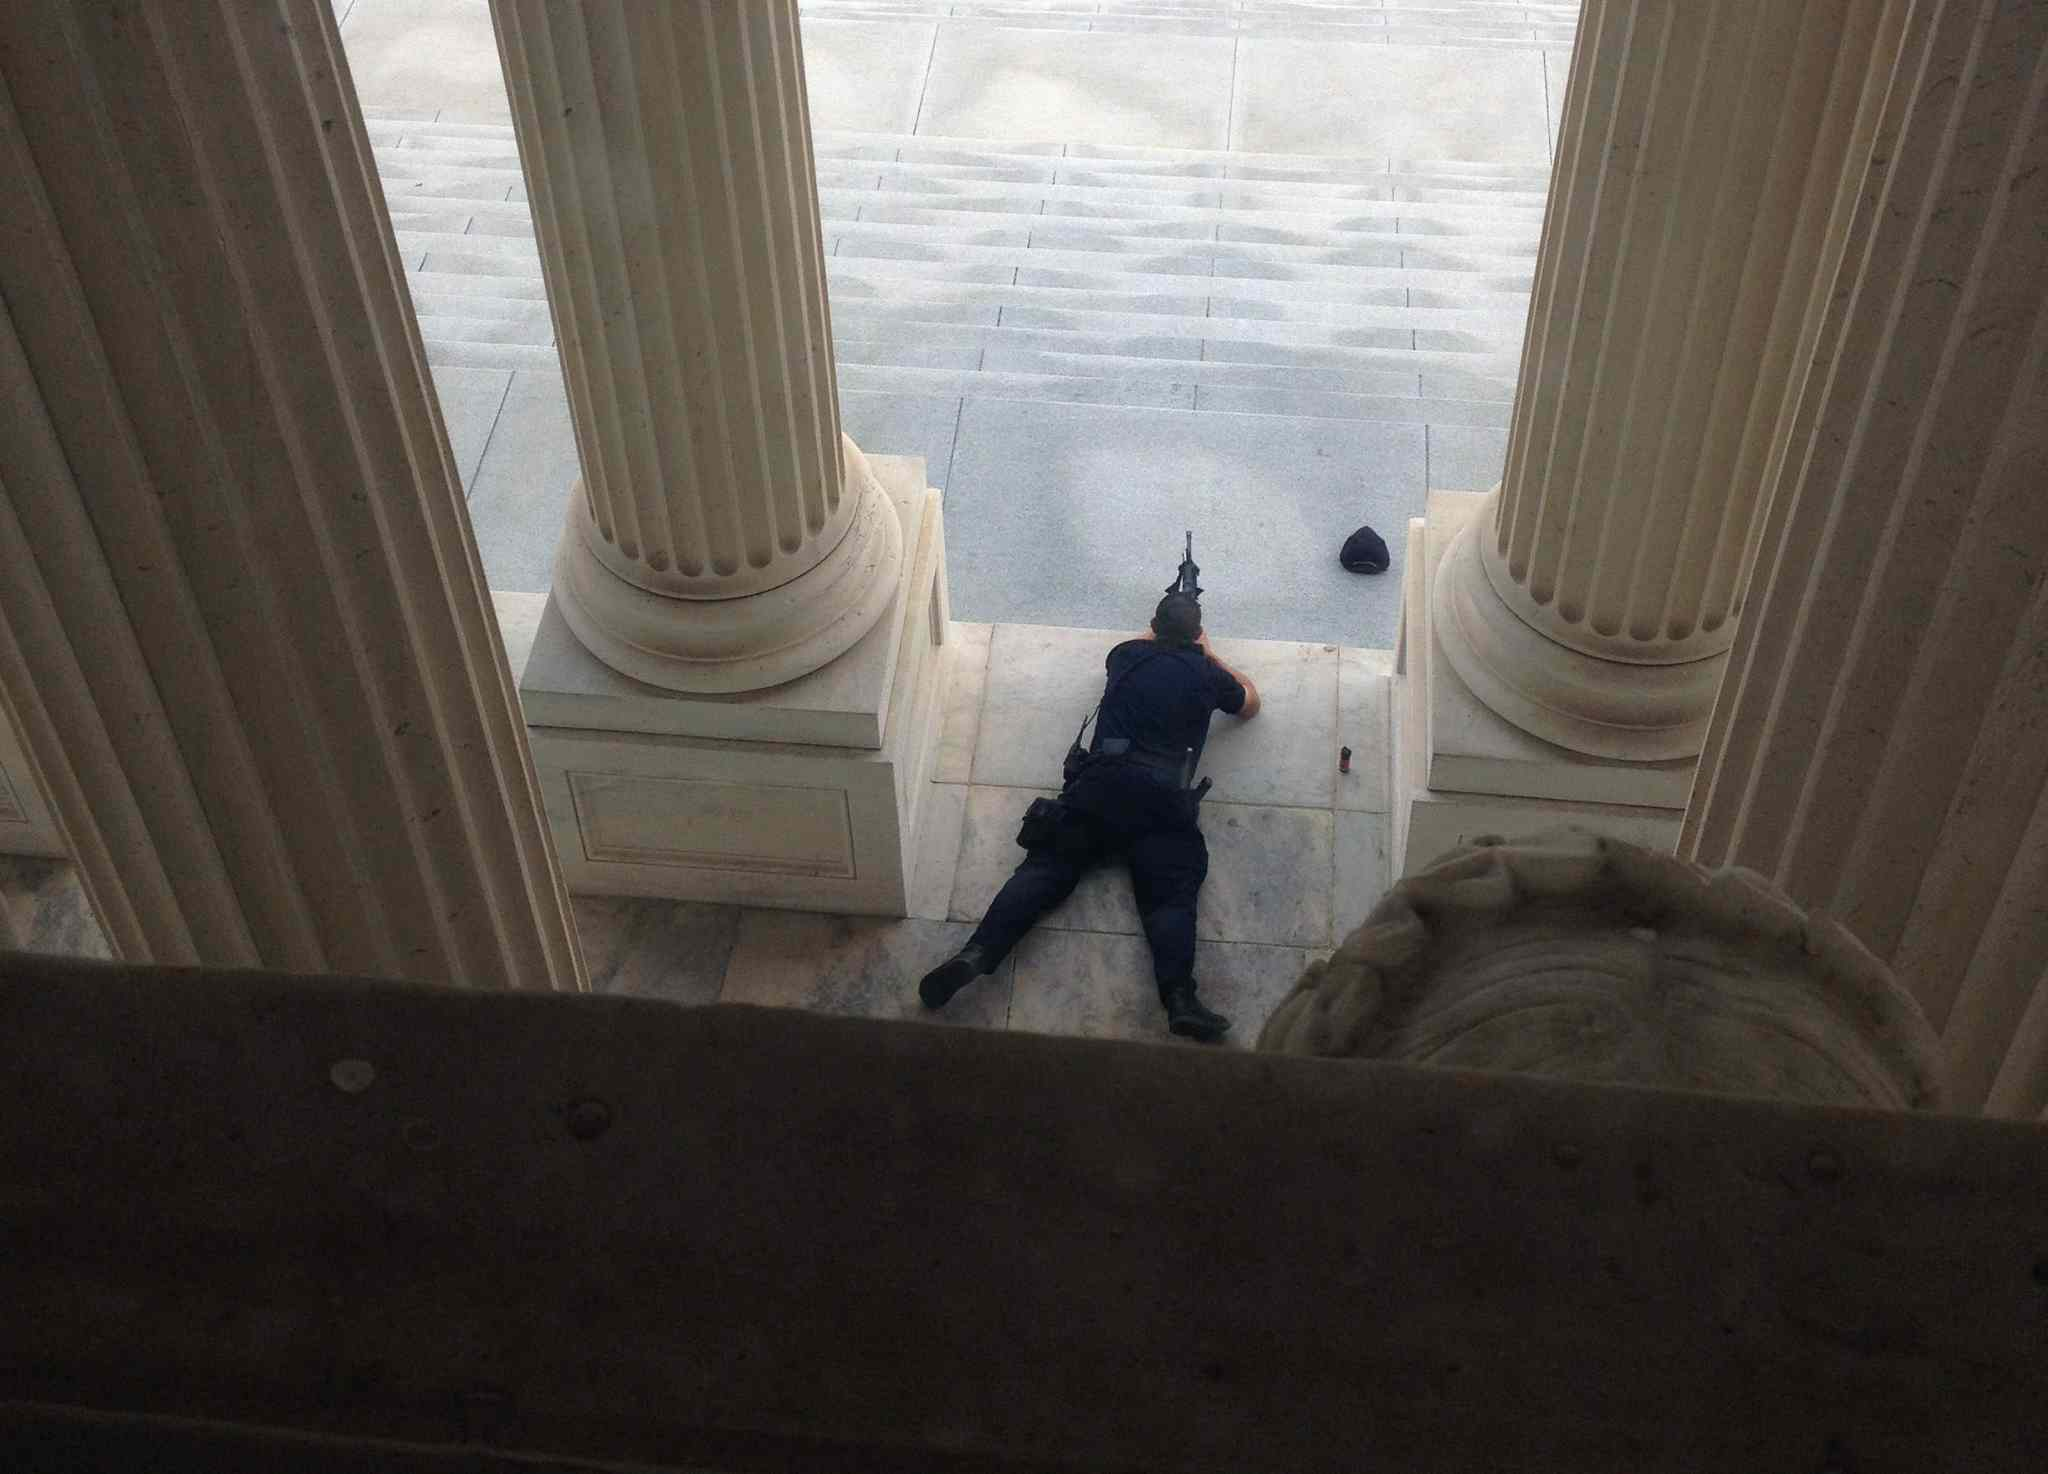 A U.S. Capitol police officer lies on the steps of the Senate with a gun drawn in response to a report of shots fired Thursday. The entire complex was locked down.